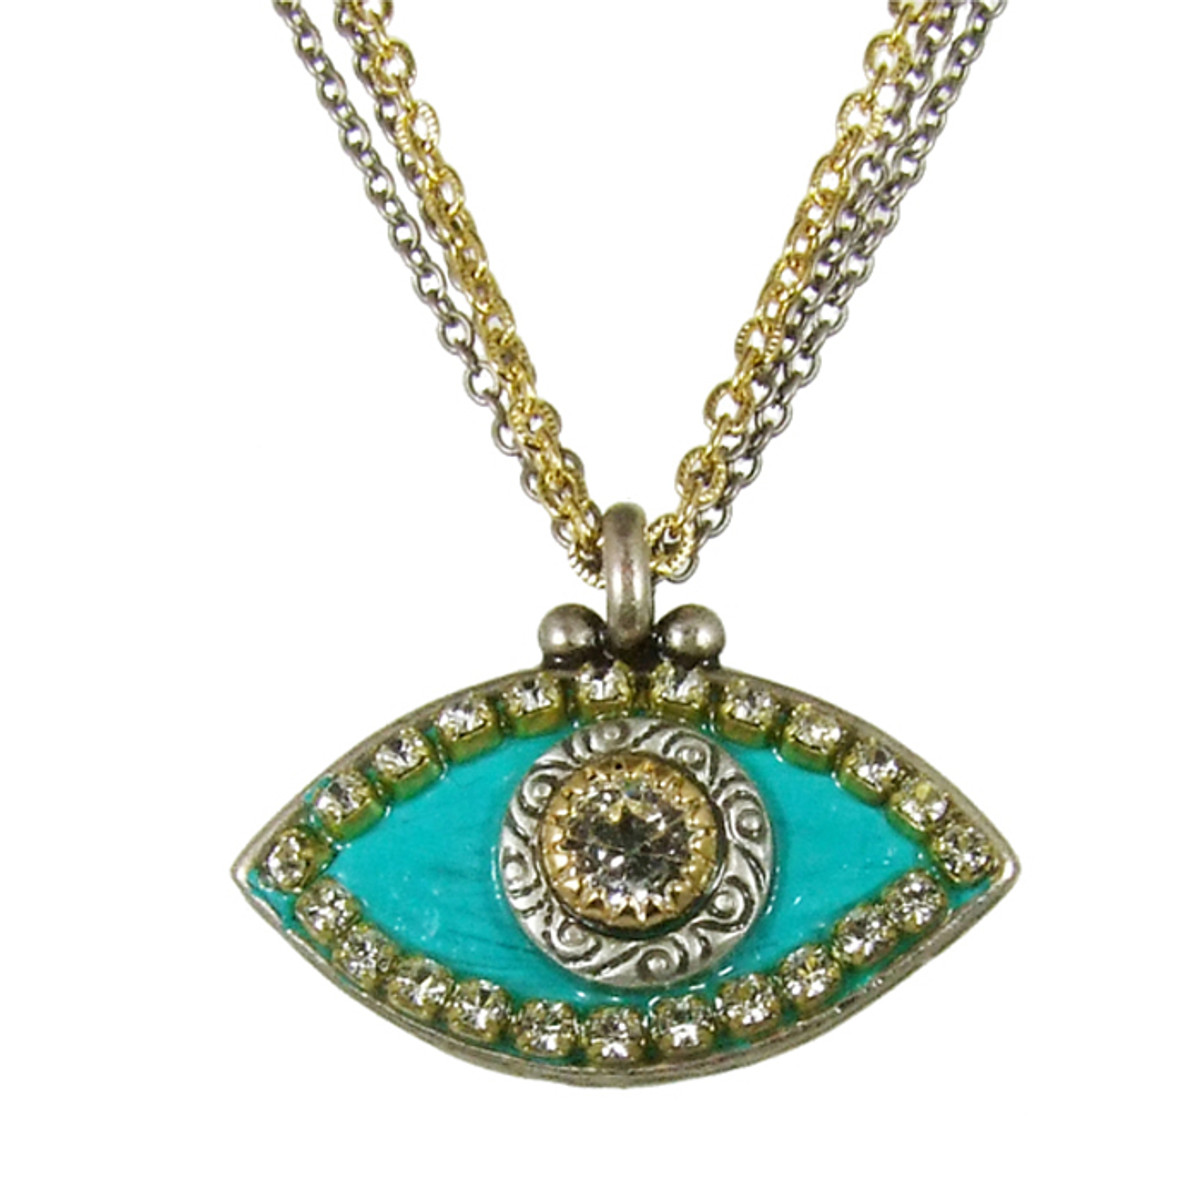 Evil Eye Necklace - Blue, Medium Eye With Crystal Edges & Center